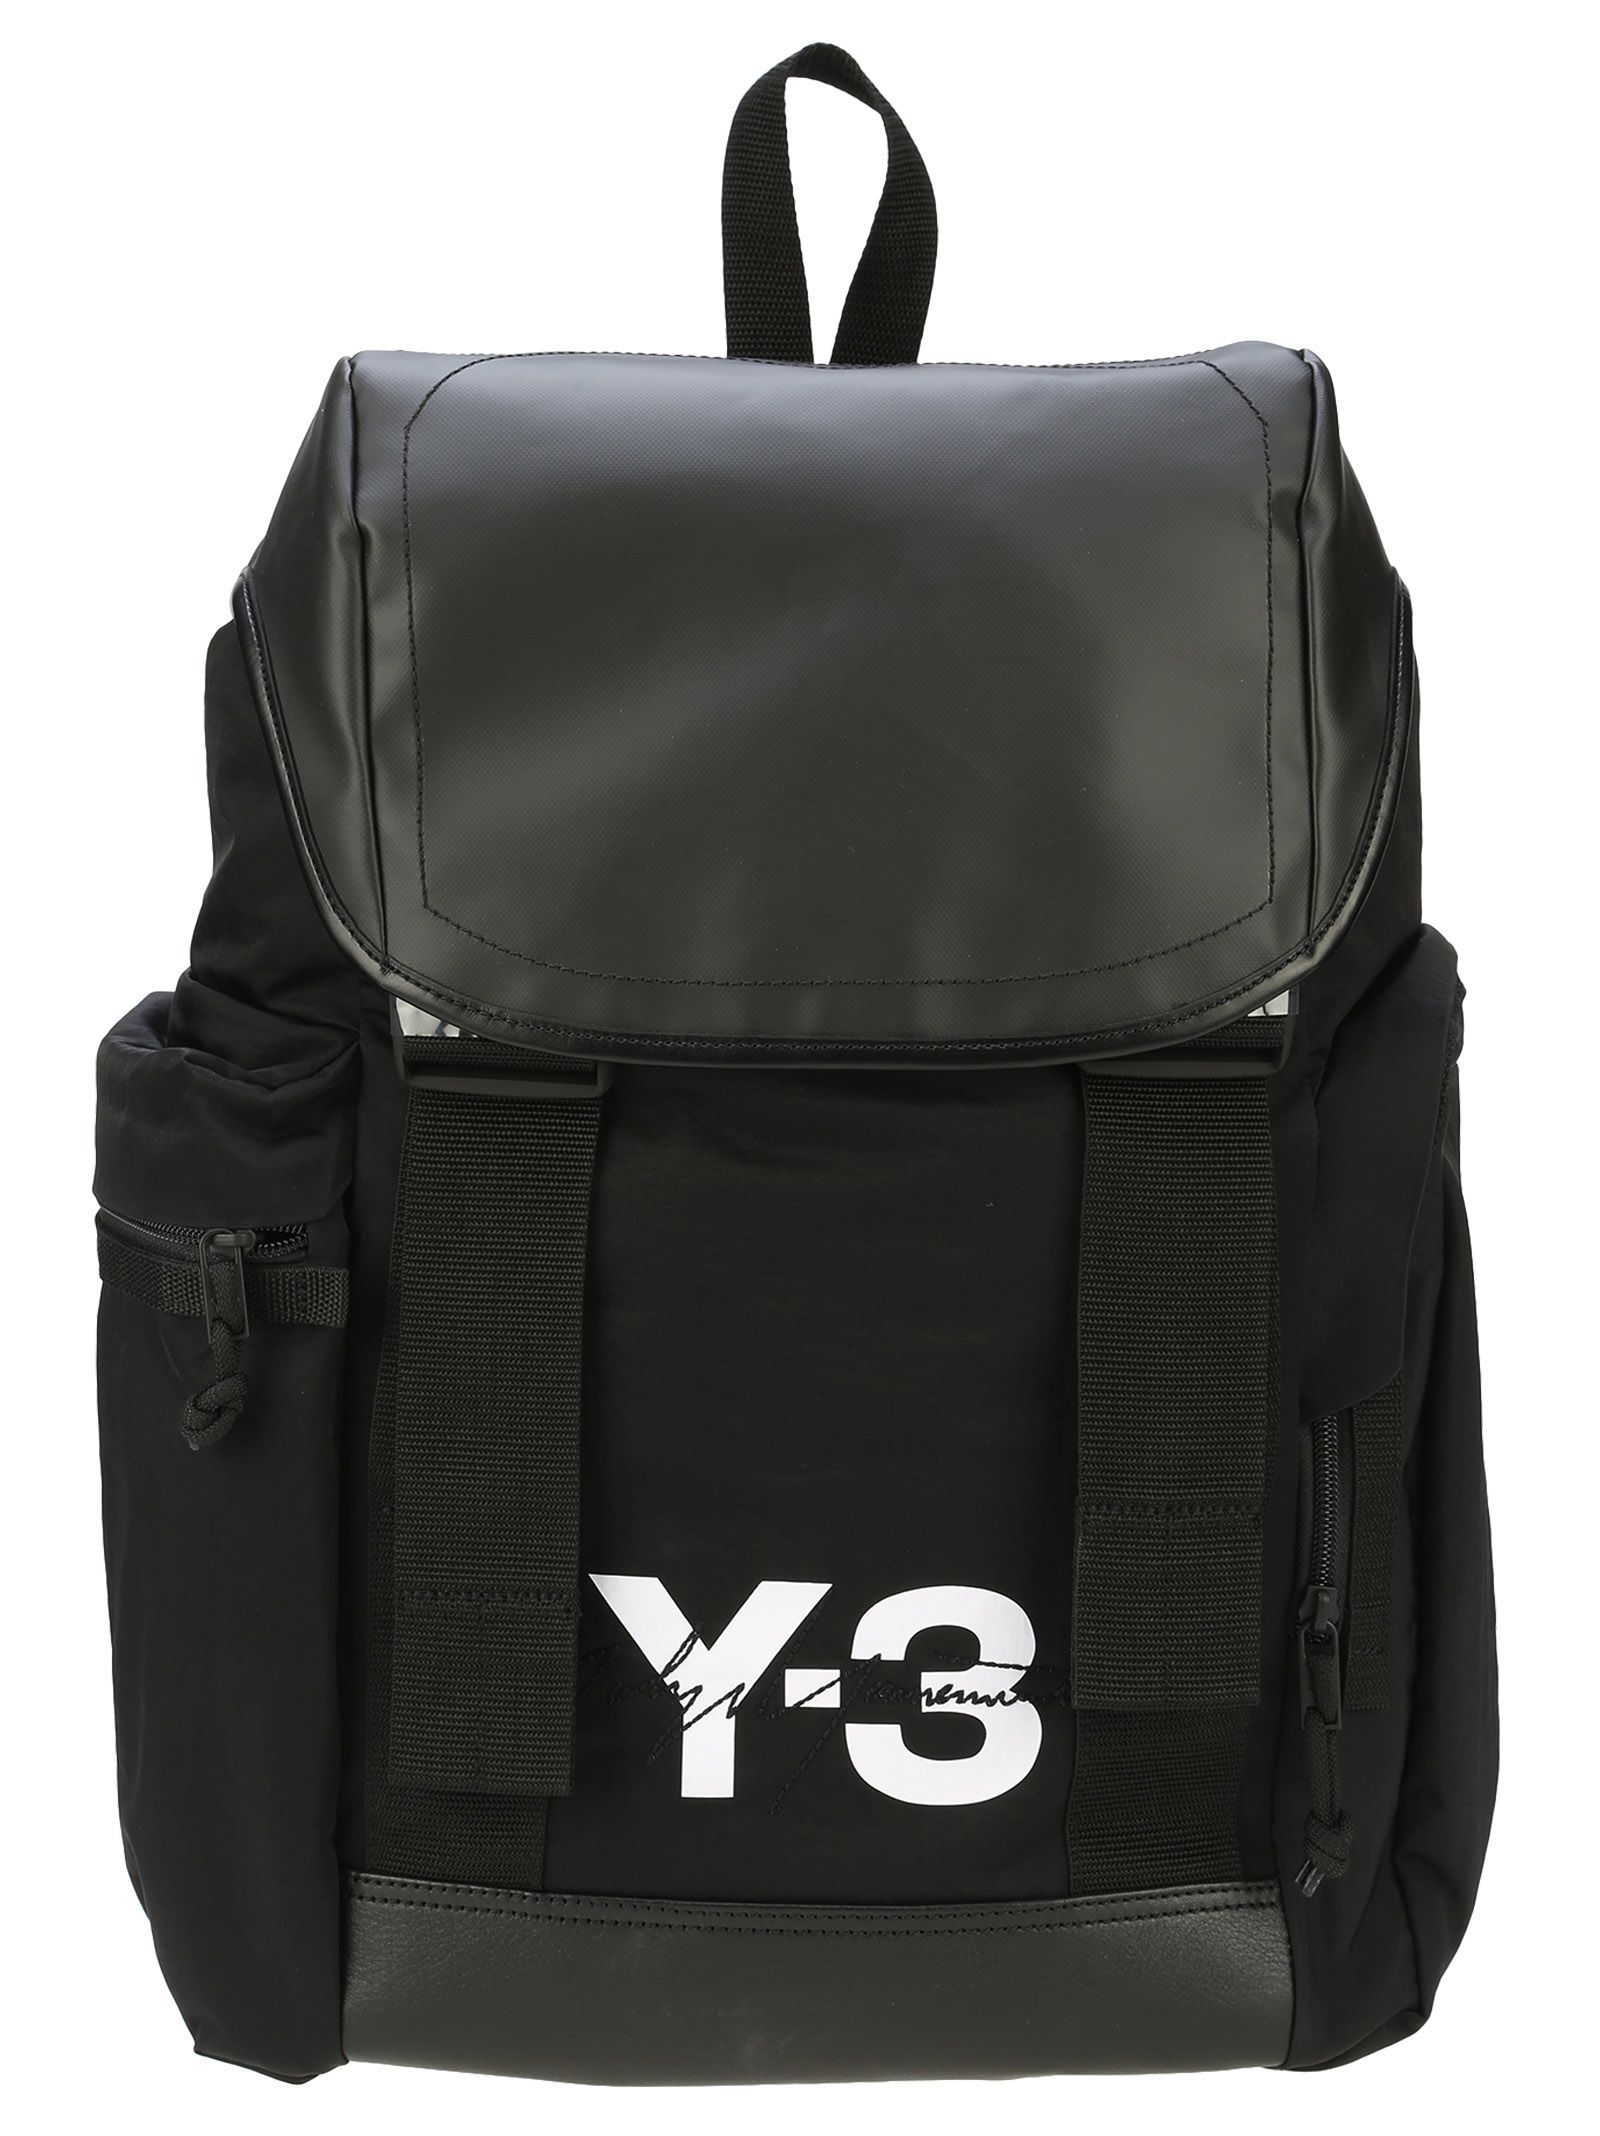 084eecea967 Y-3 ADIDAS Y3 BACKPACK. #y-3 #bags #nylon #backpacks # | Y-3 ...